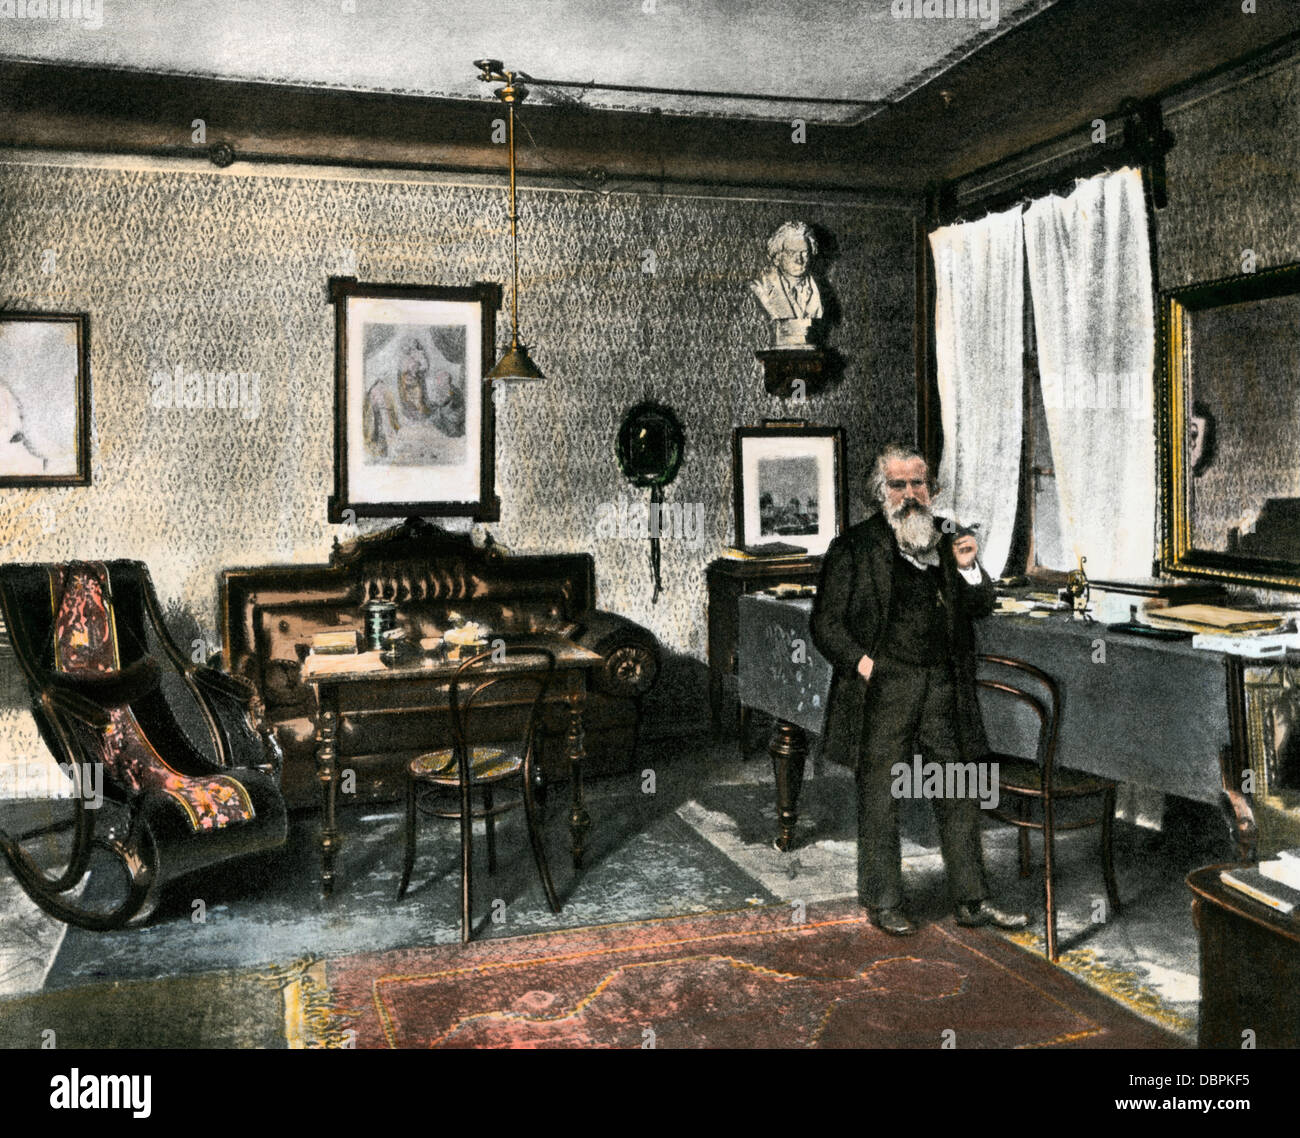 Johannes Brahms in his study, Vienna, 1800s. Hand-colored halftone reproduction of a photograph Stock Photo